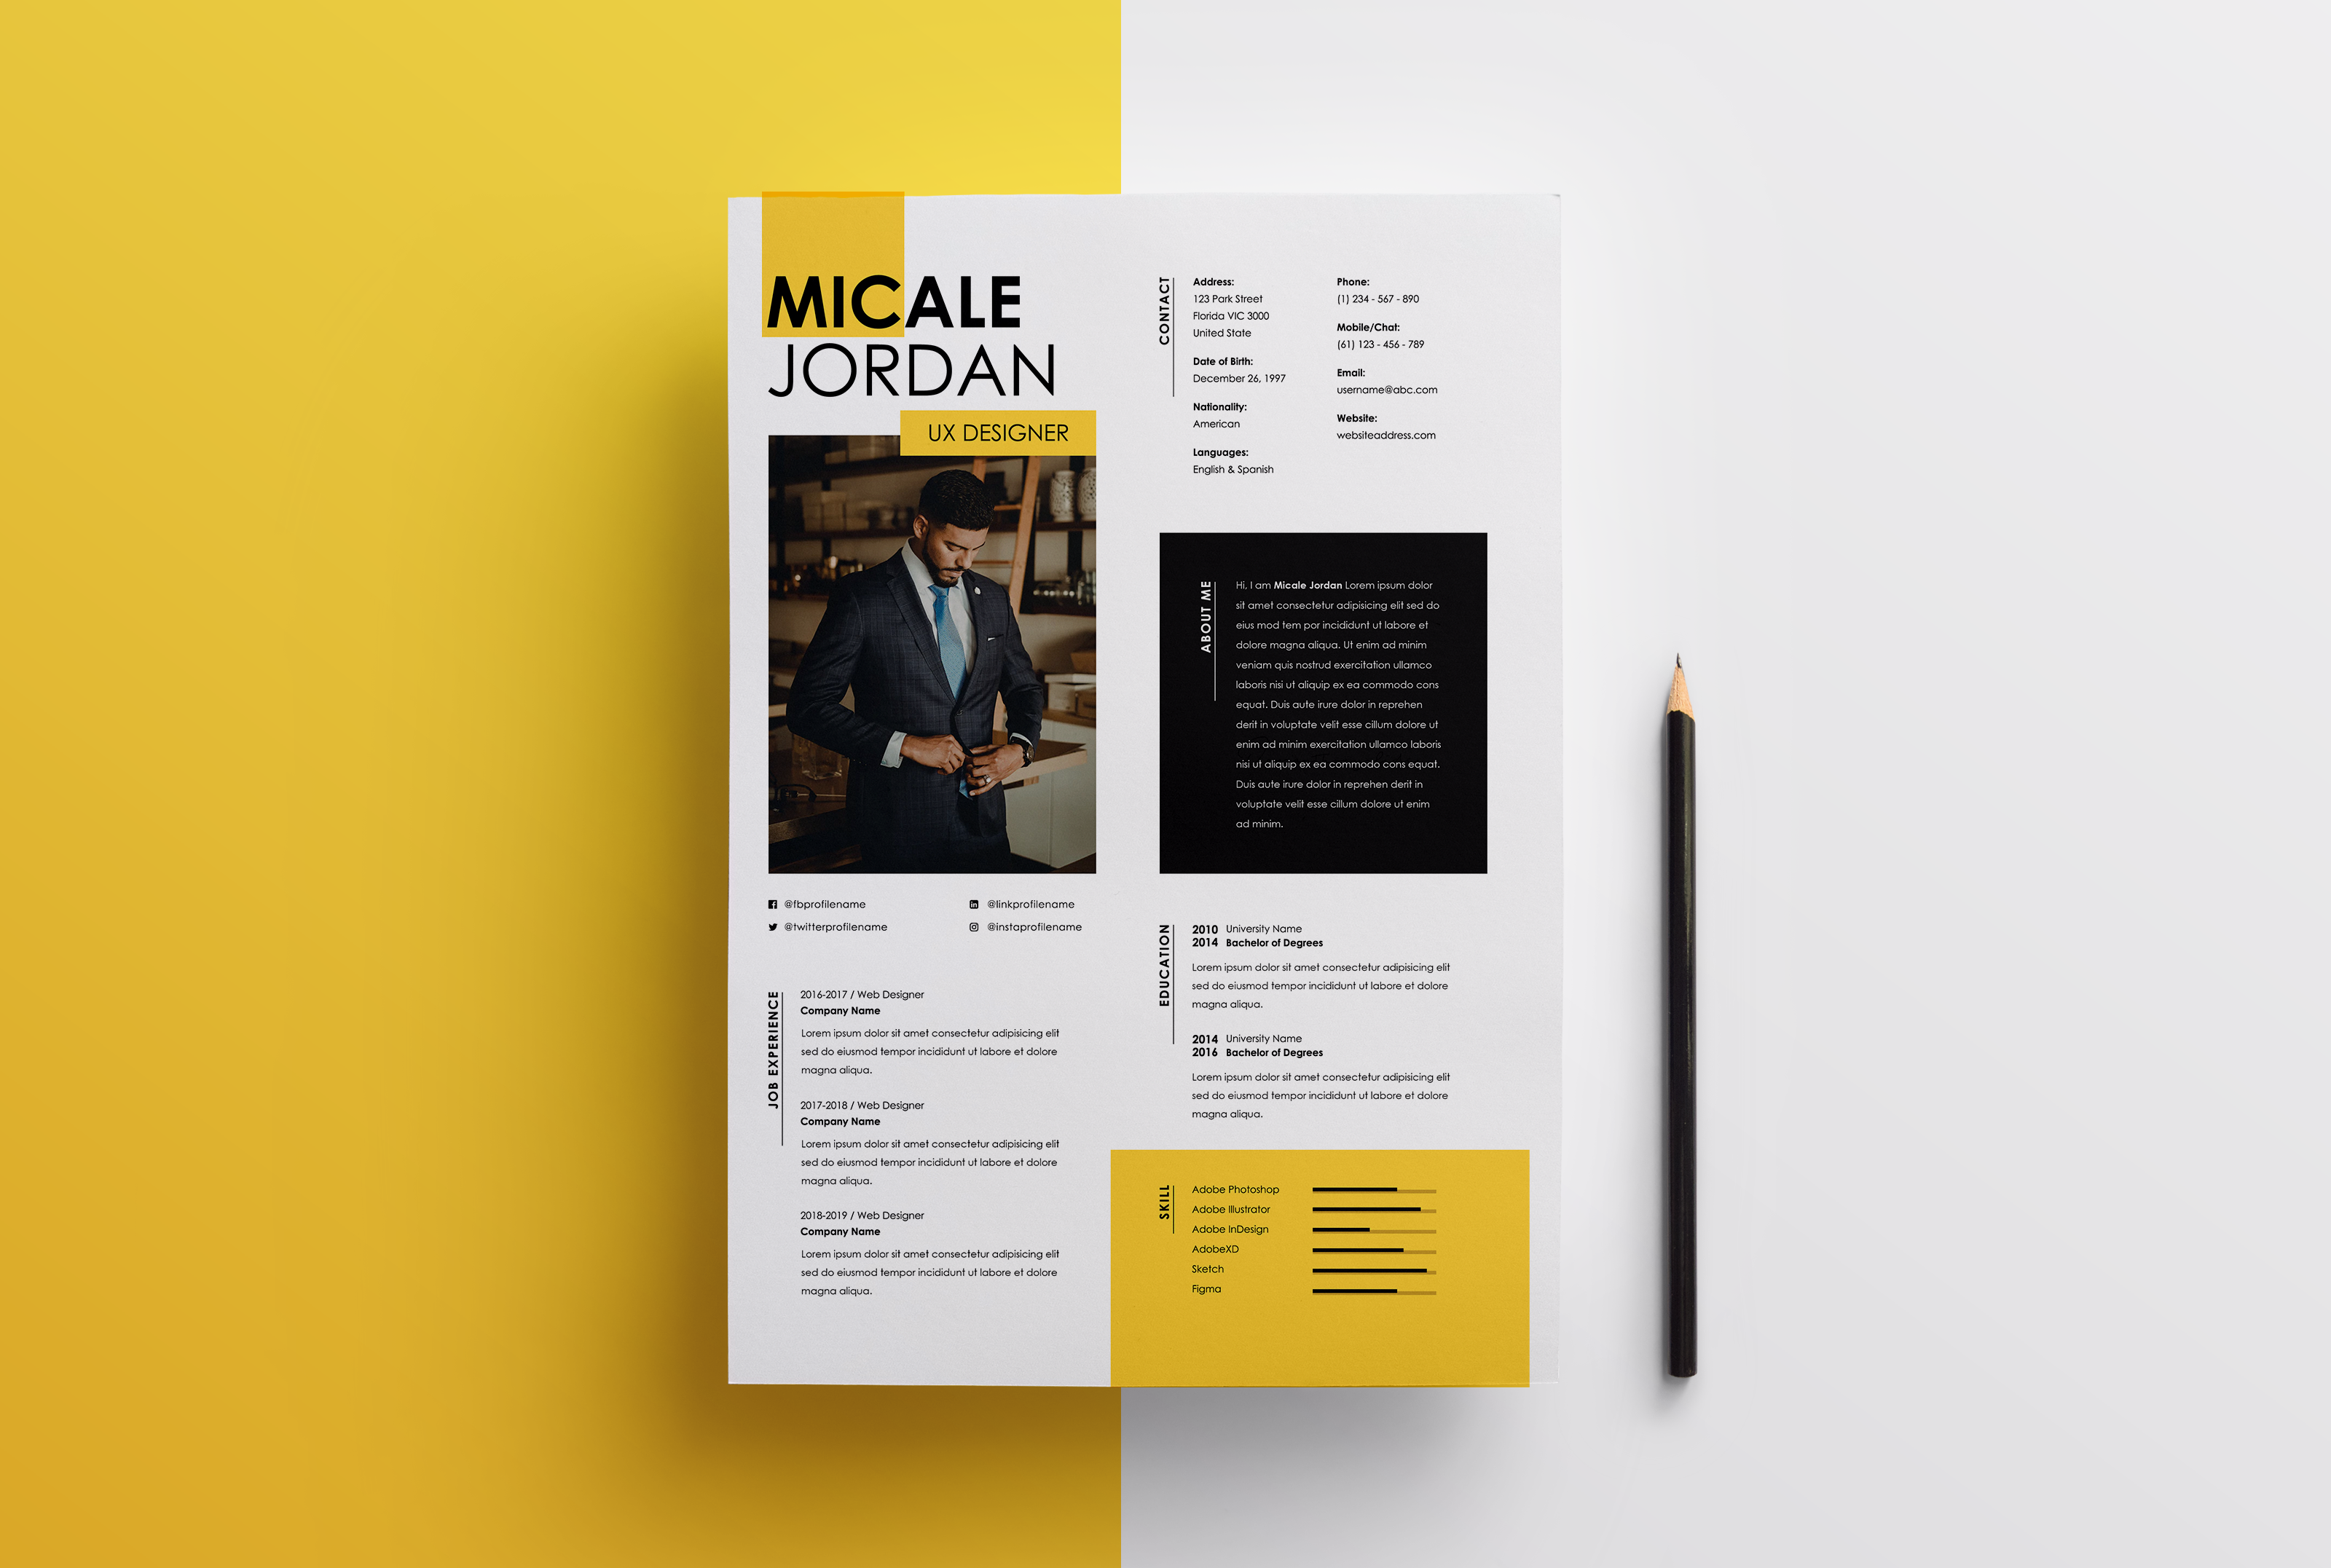 I will perform a professional resume and CV design or edit